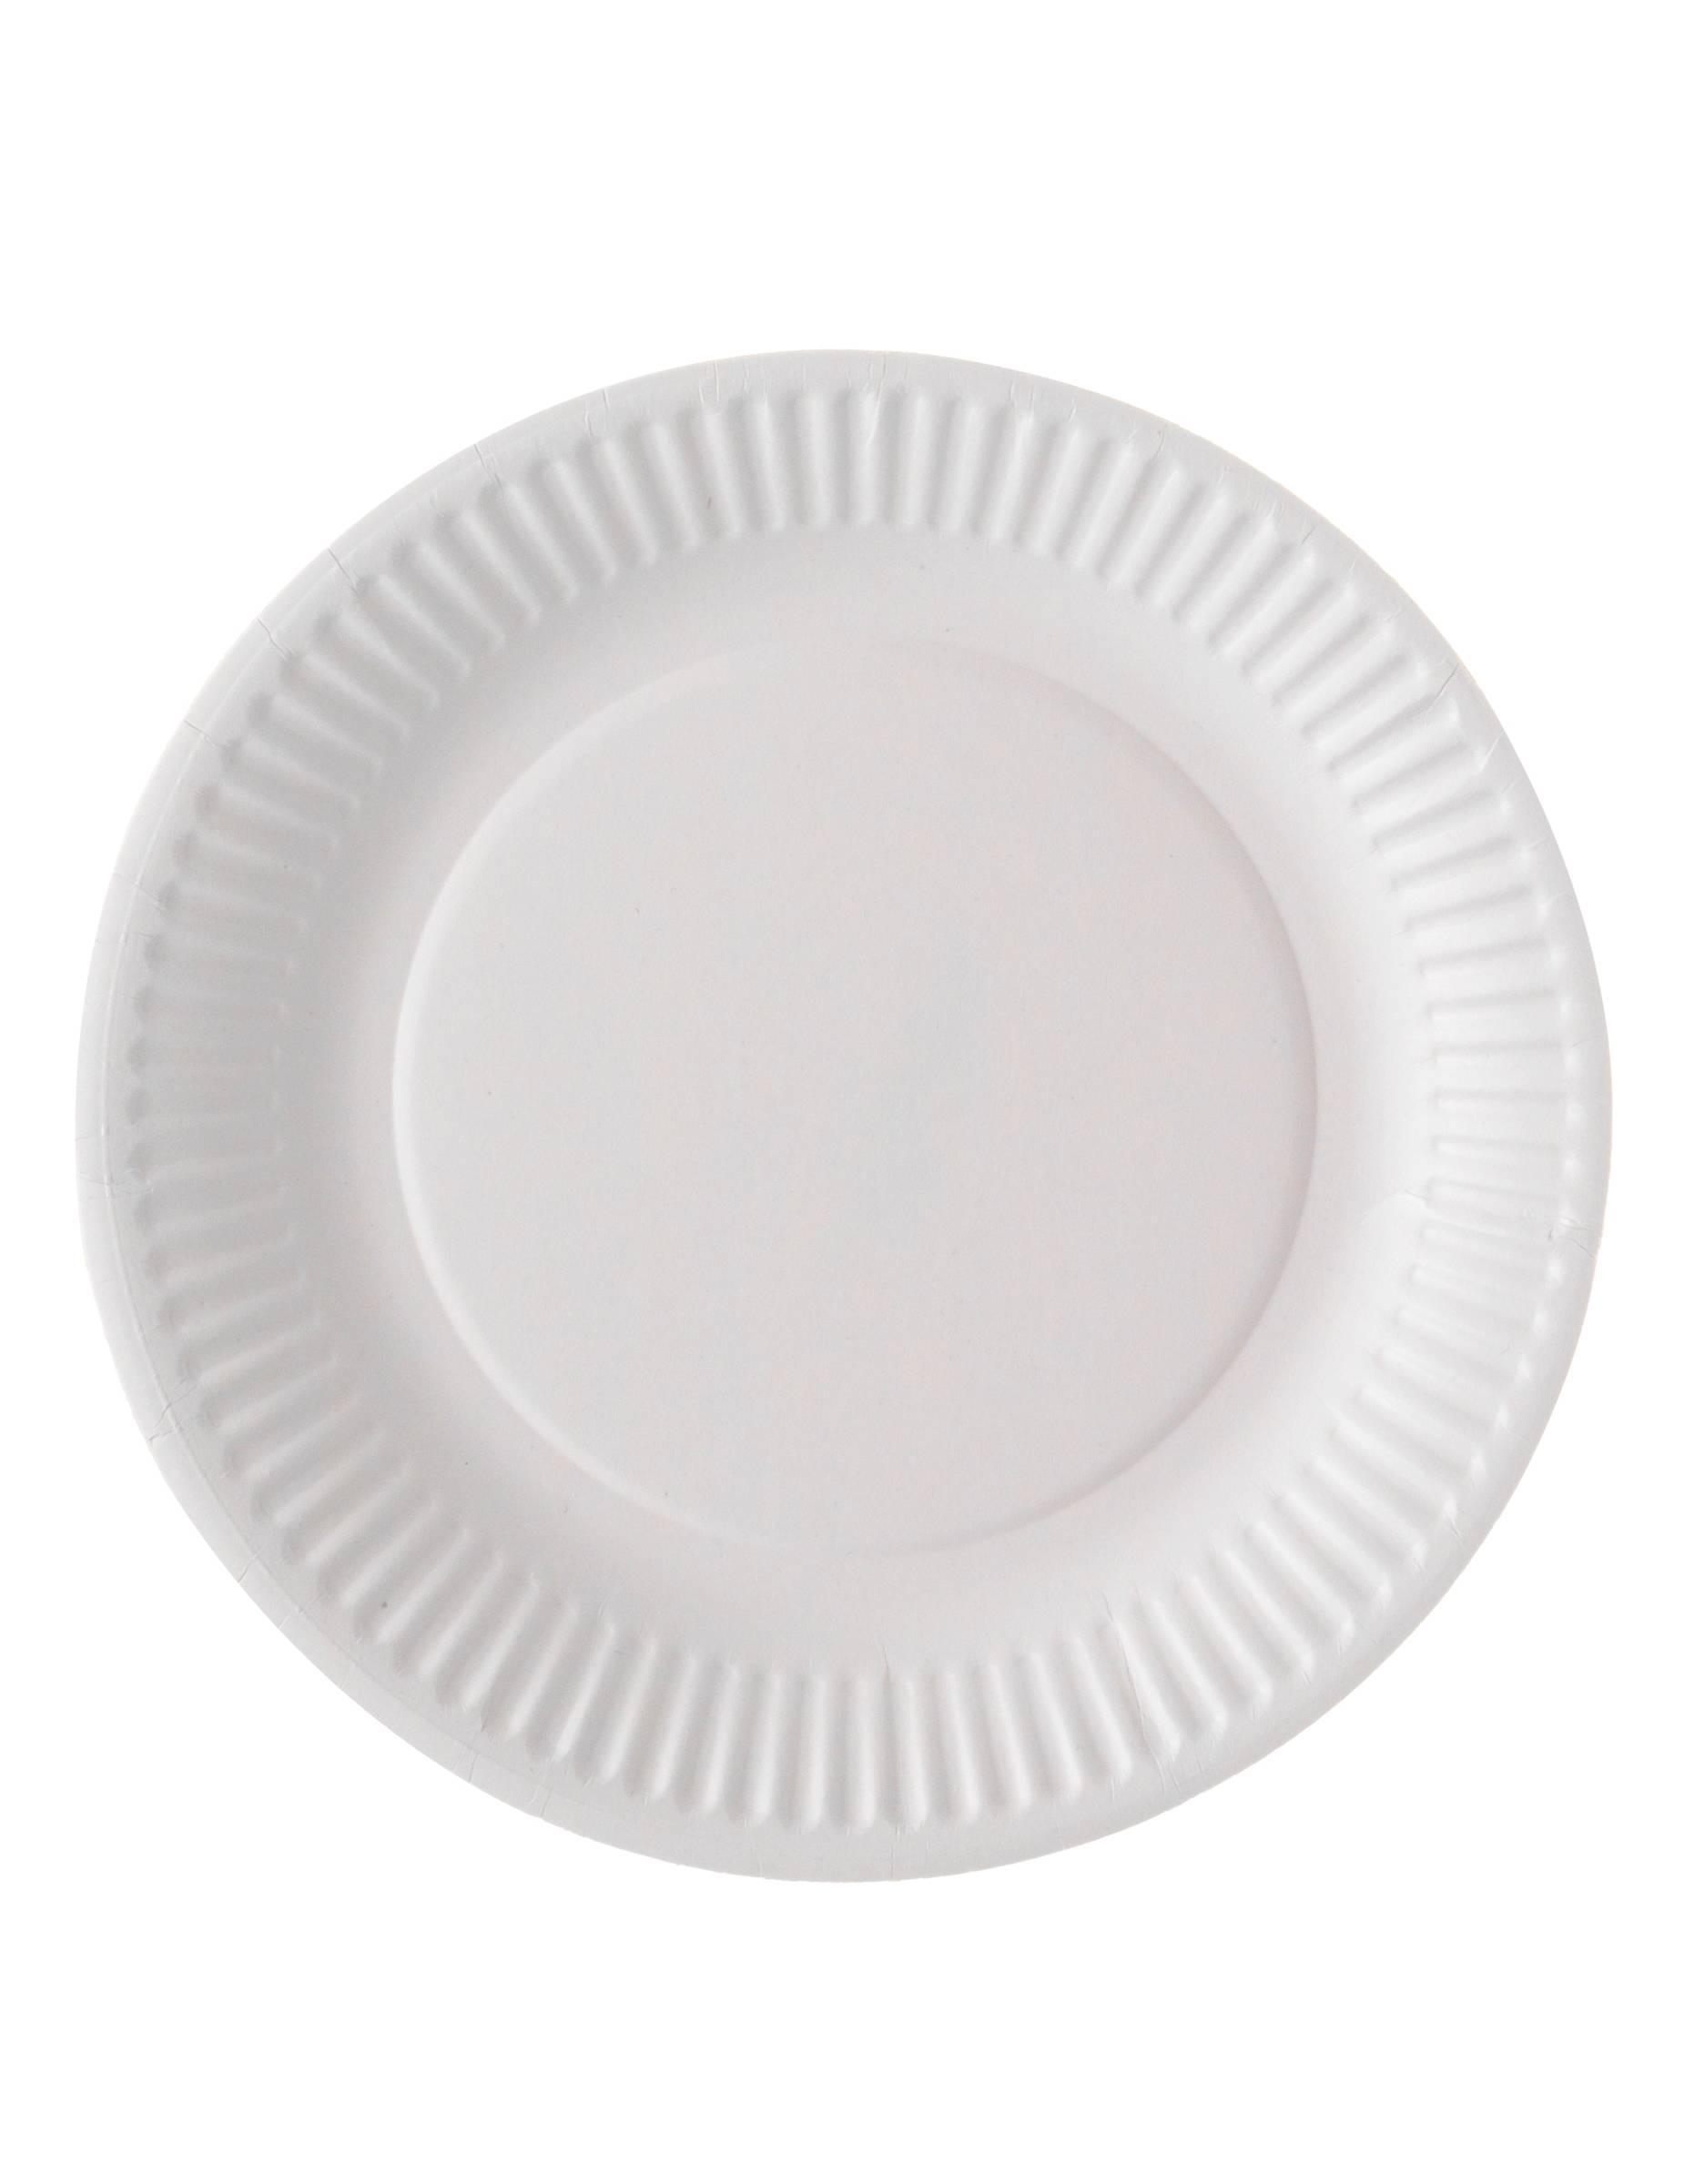 VegaooParty 100 assiettes en carton blanc biodegradable 18 cm